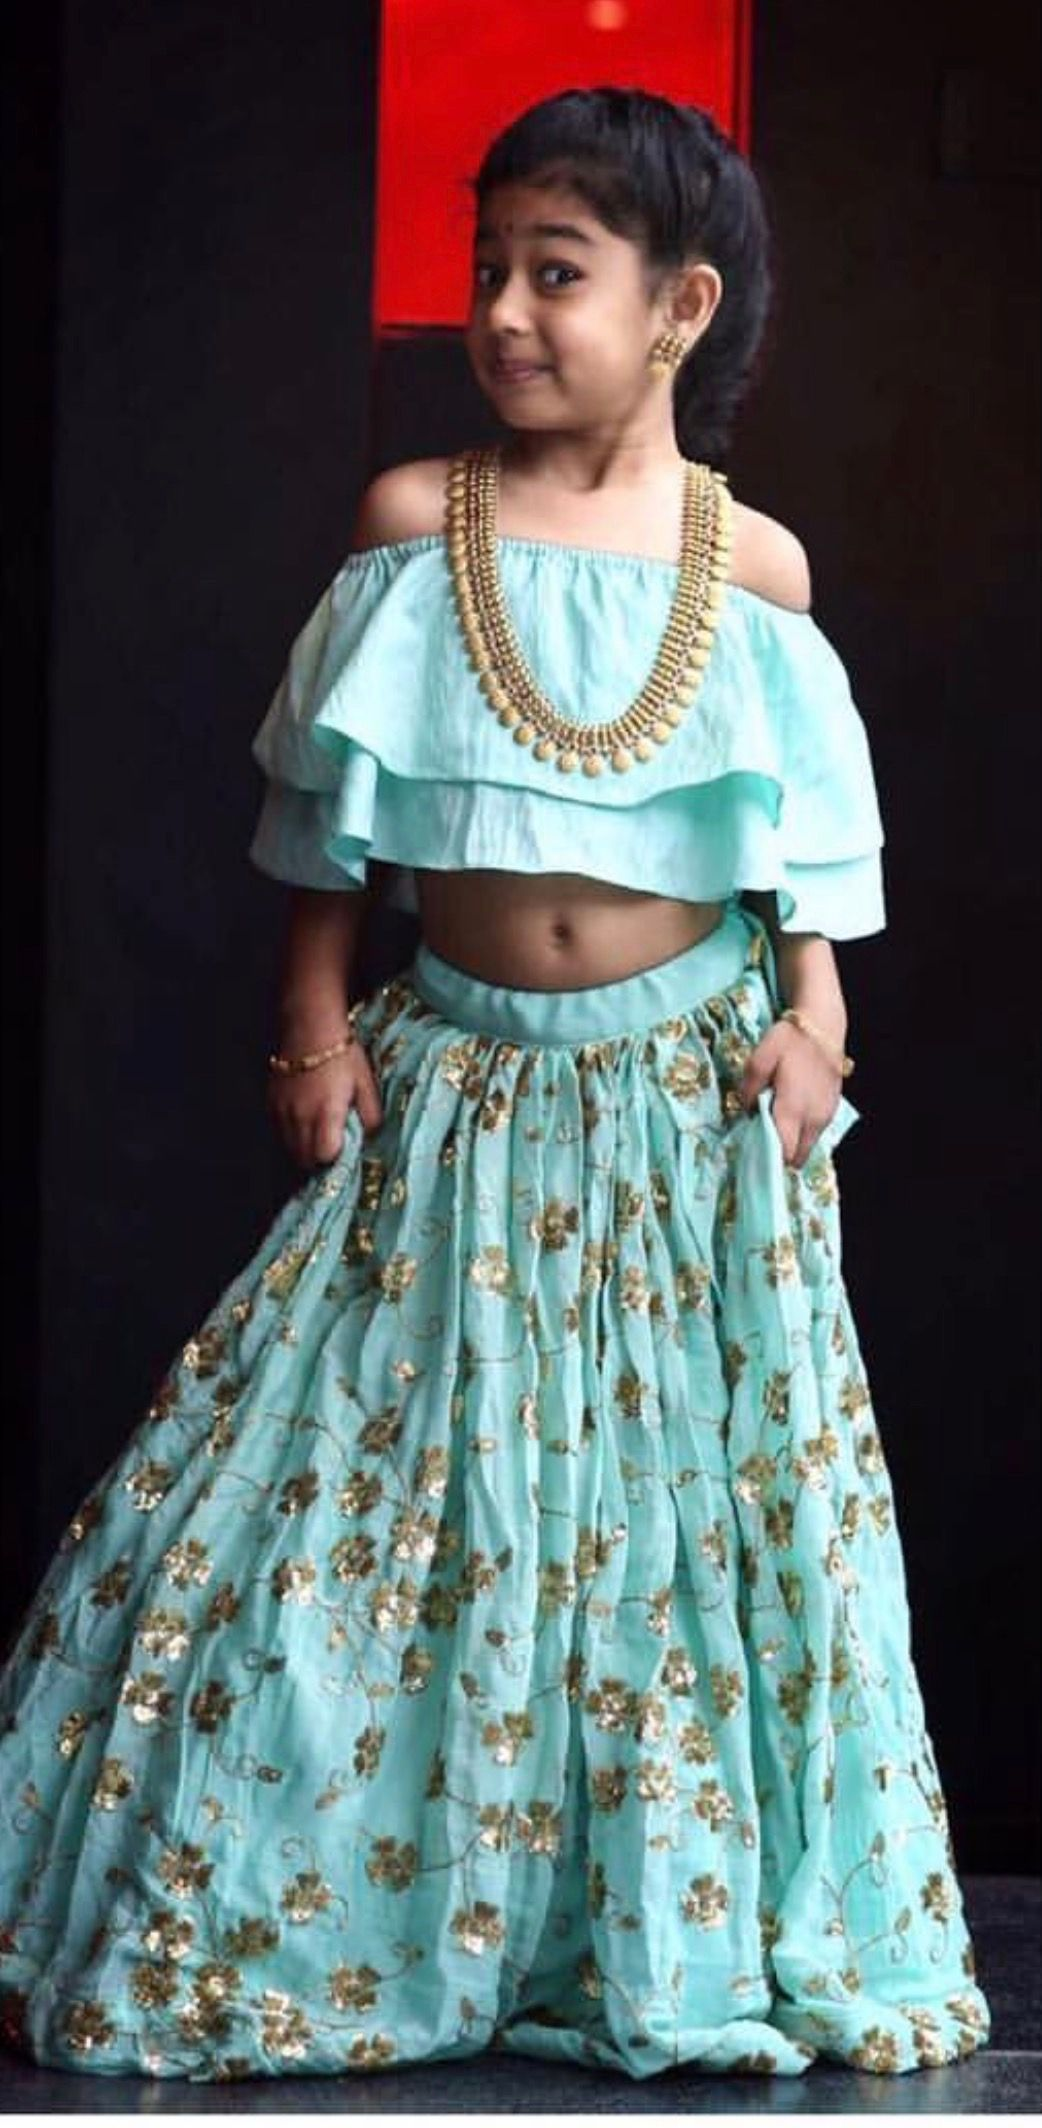 2d8c7f665e087 Indowestern outfit for little angels #indowestern #fashion #Indian  #Indianfashion